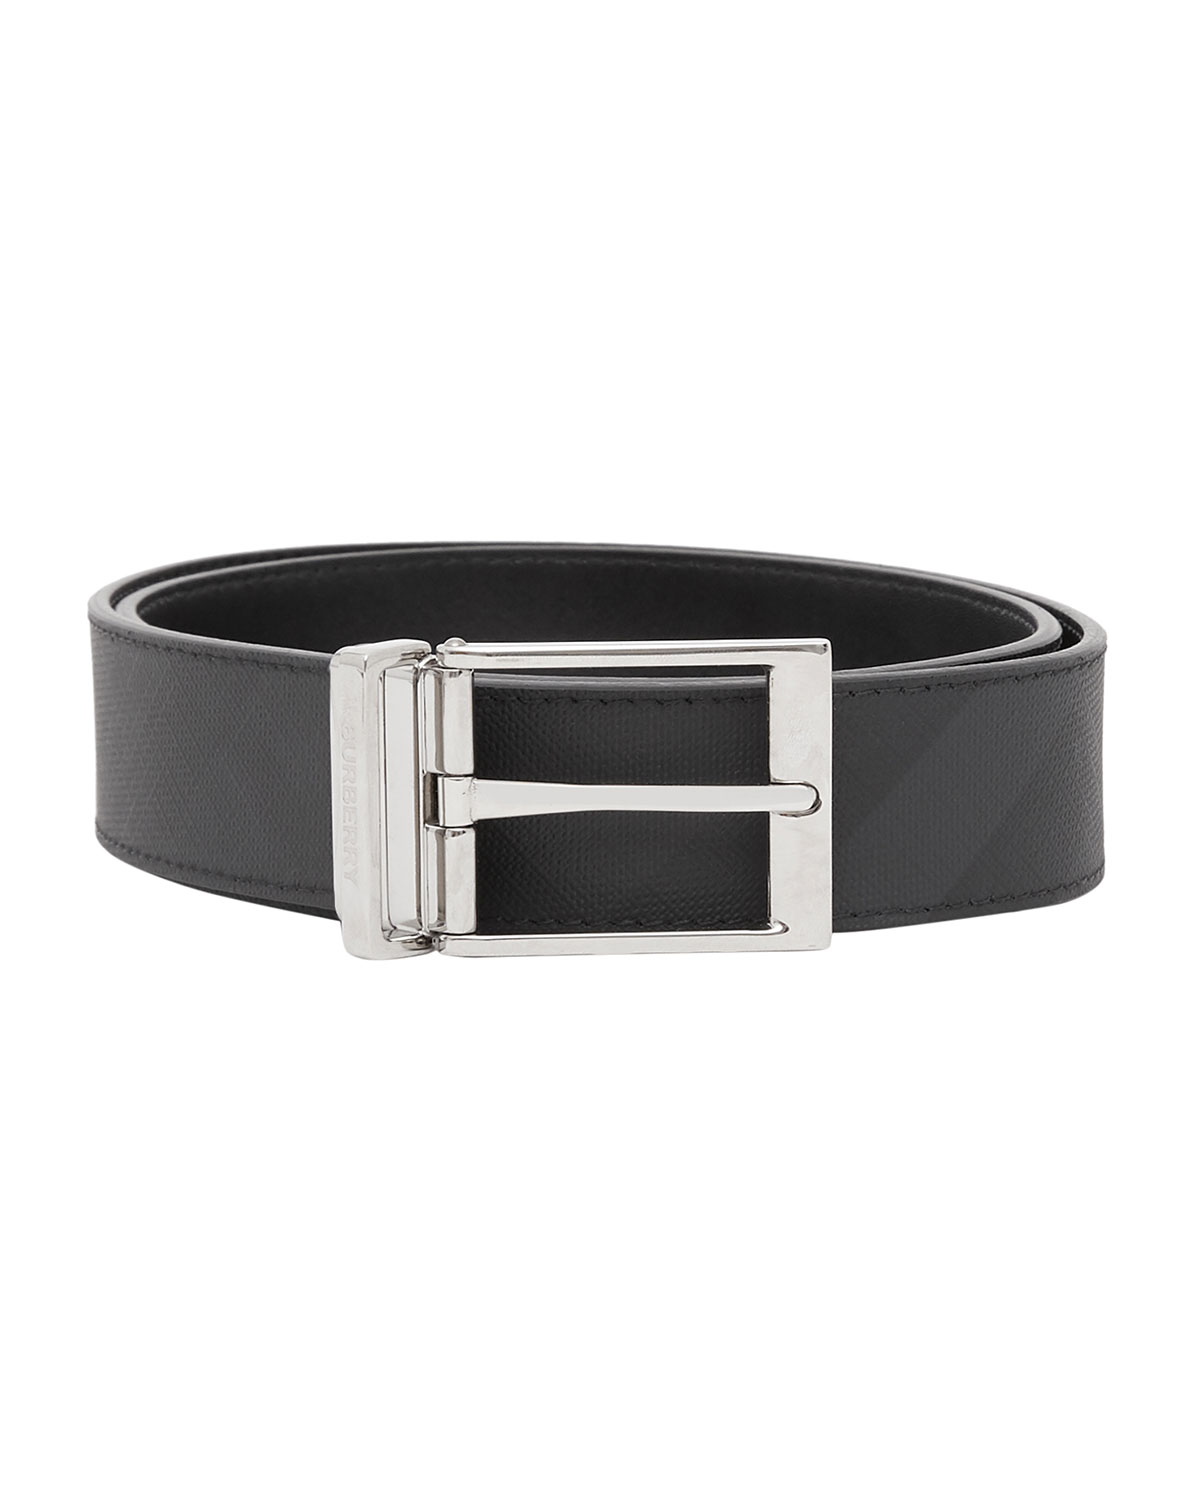 Burberry Belts MEN'S LOUIS REVERSIBLE LONDON CHECK/SMOOTH LEATHER BELT